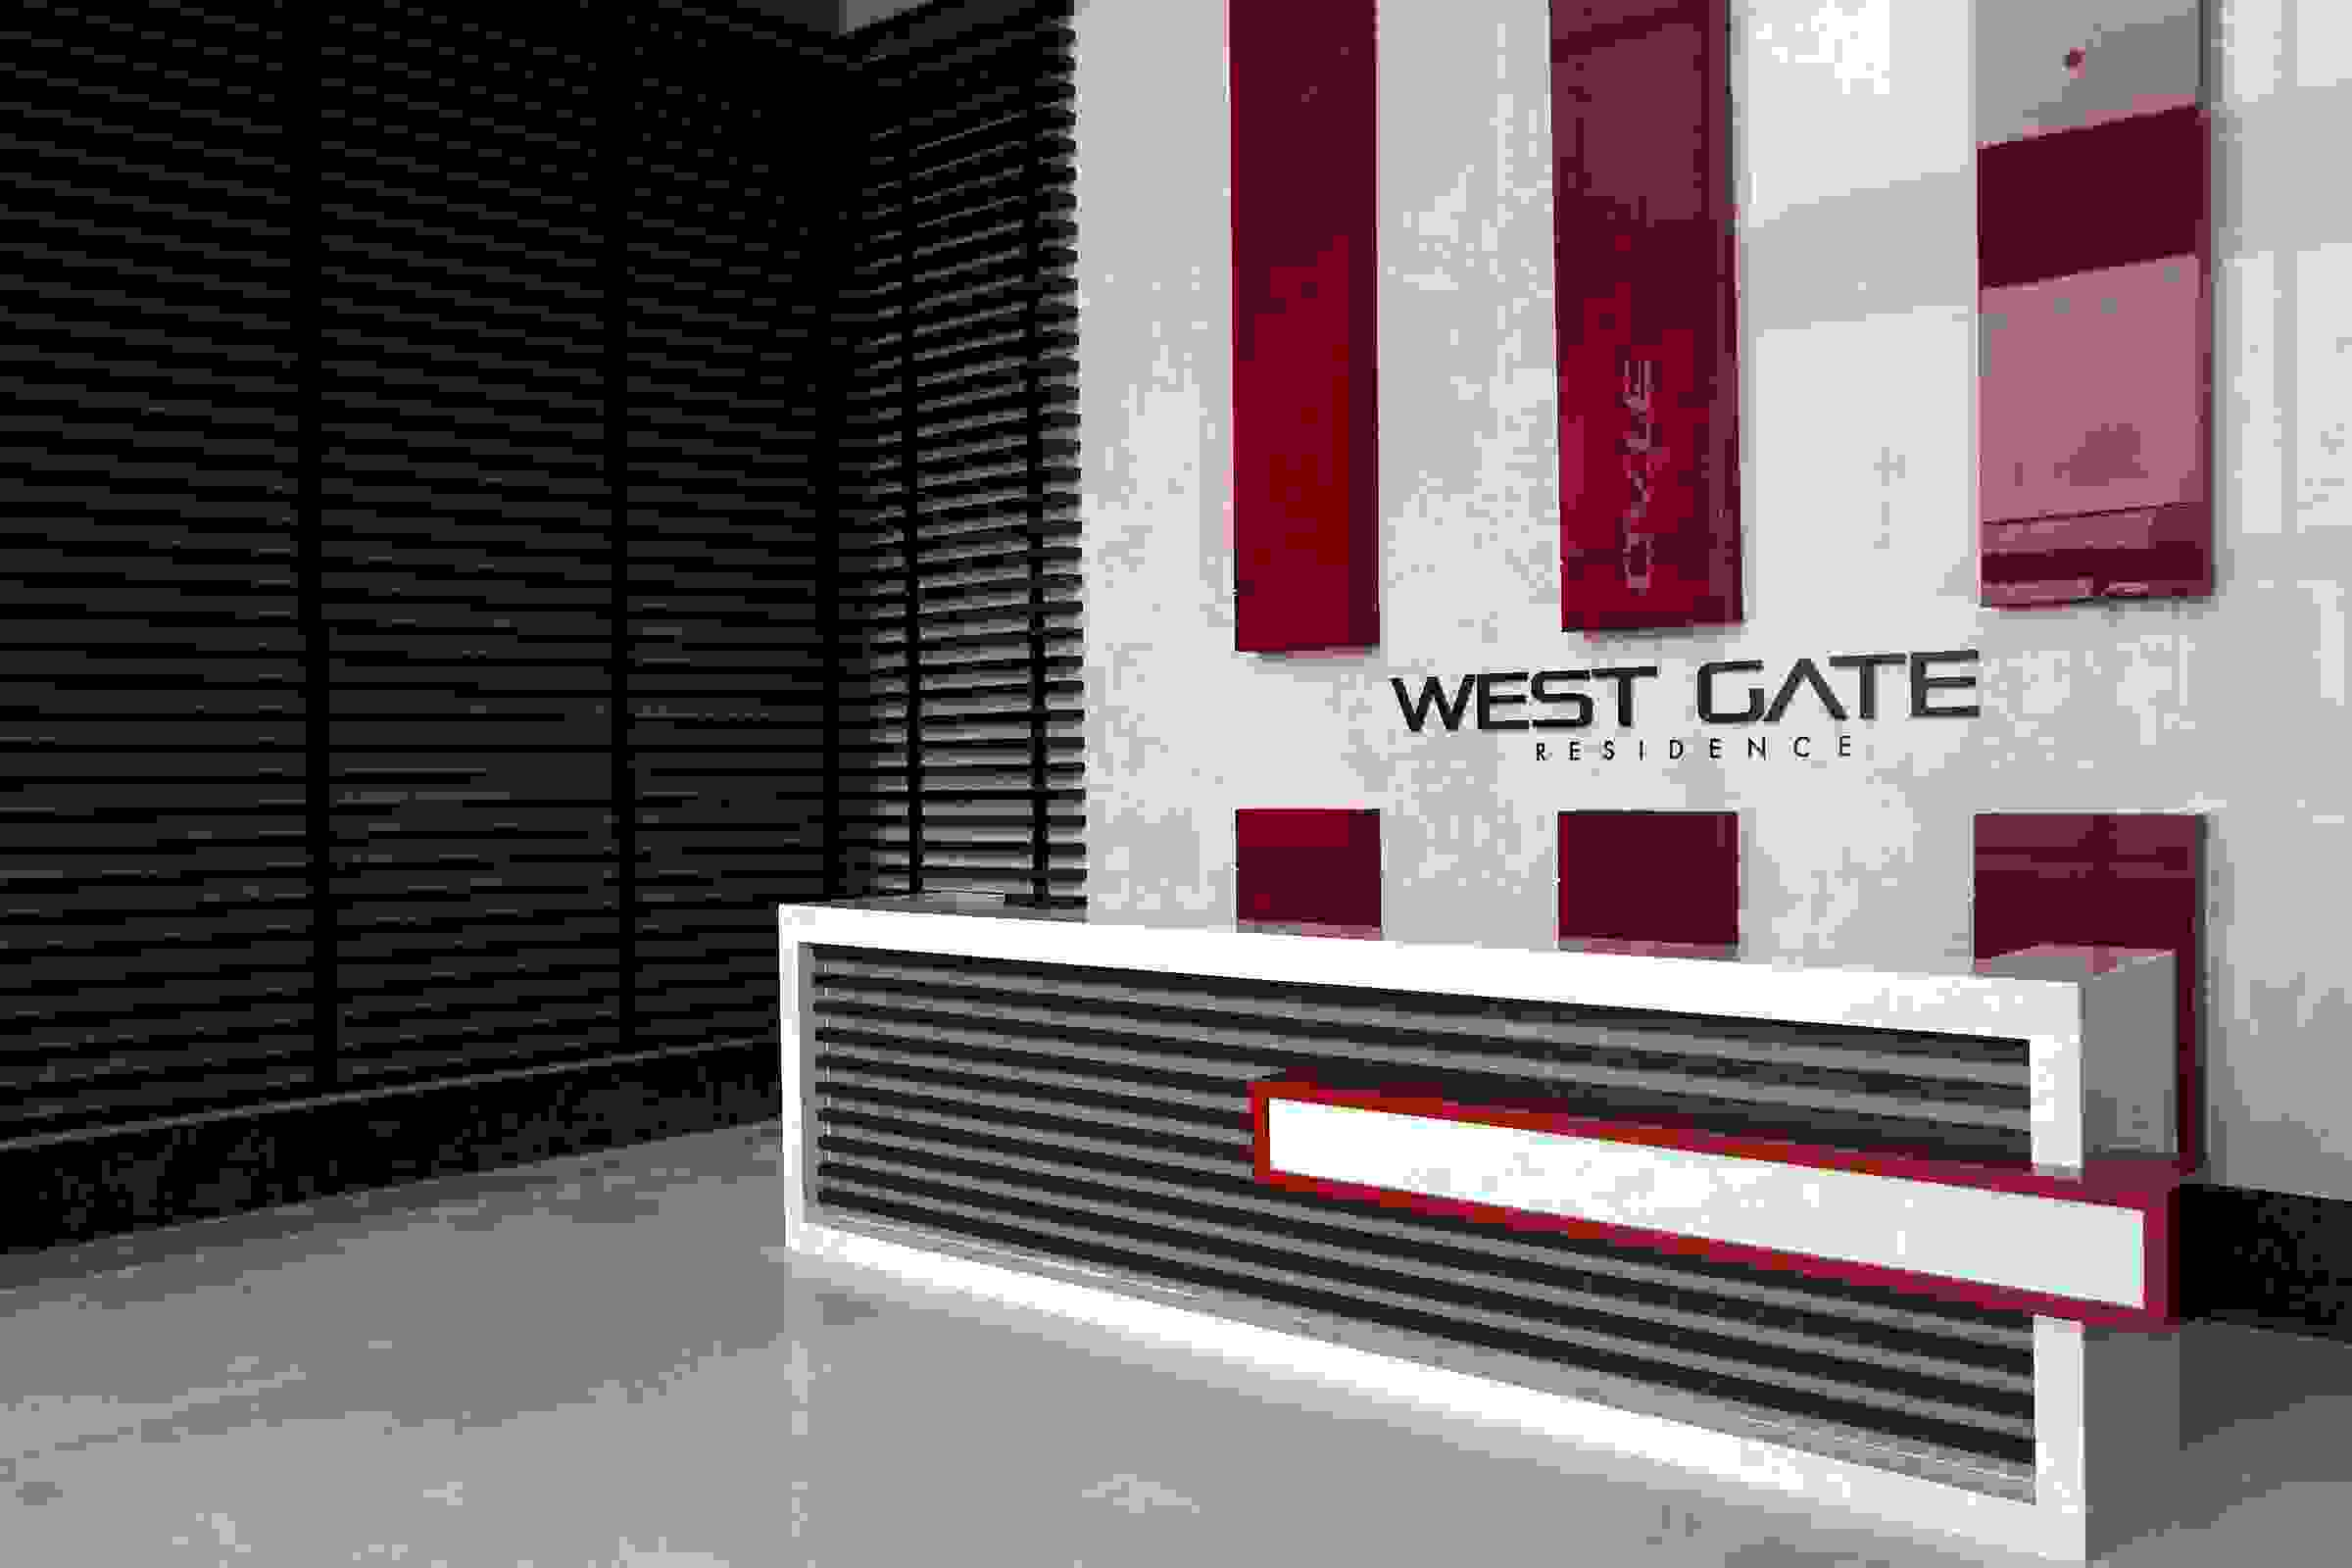 West Gate Residence